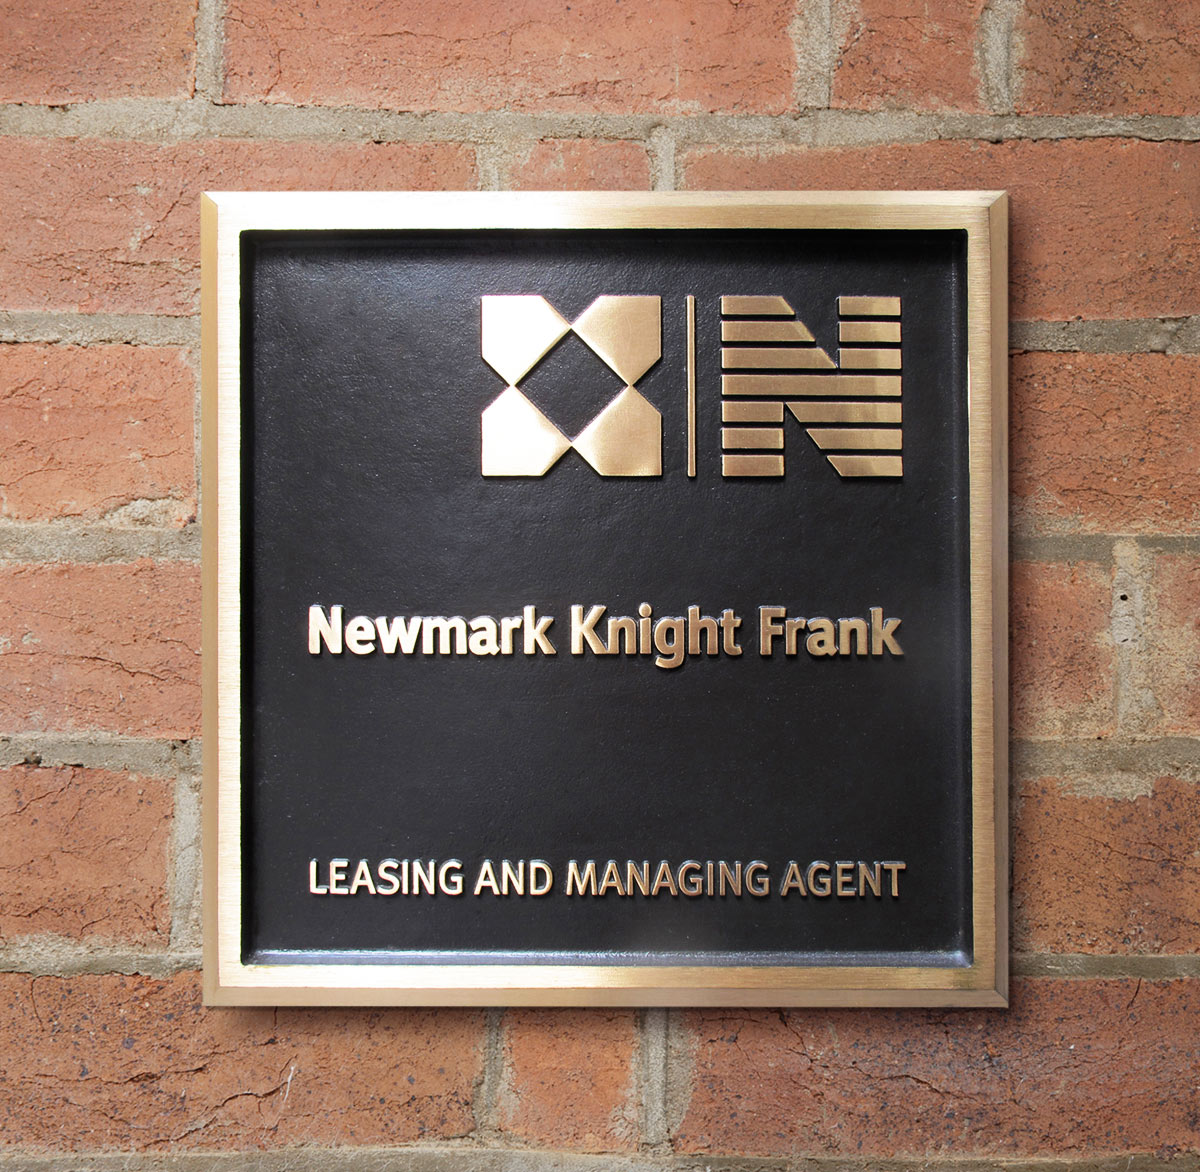 masterwork-plaques-building-management-plaques-newark-knight-frank-bronze-wall-plaque.jpg